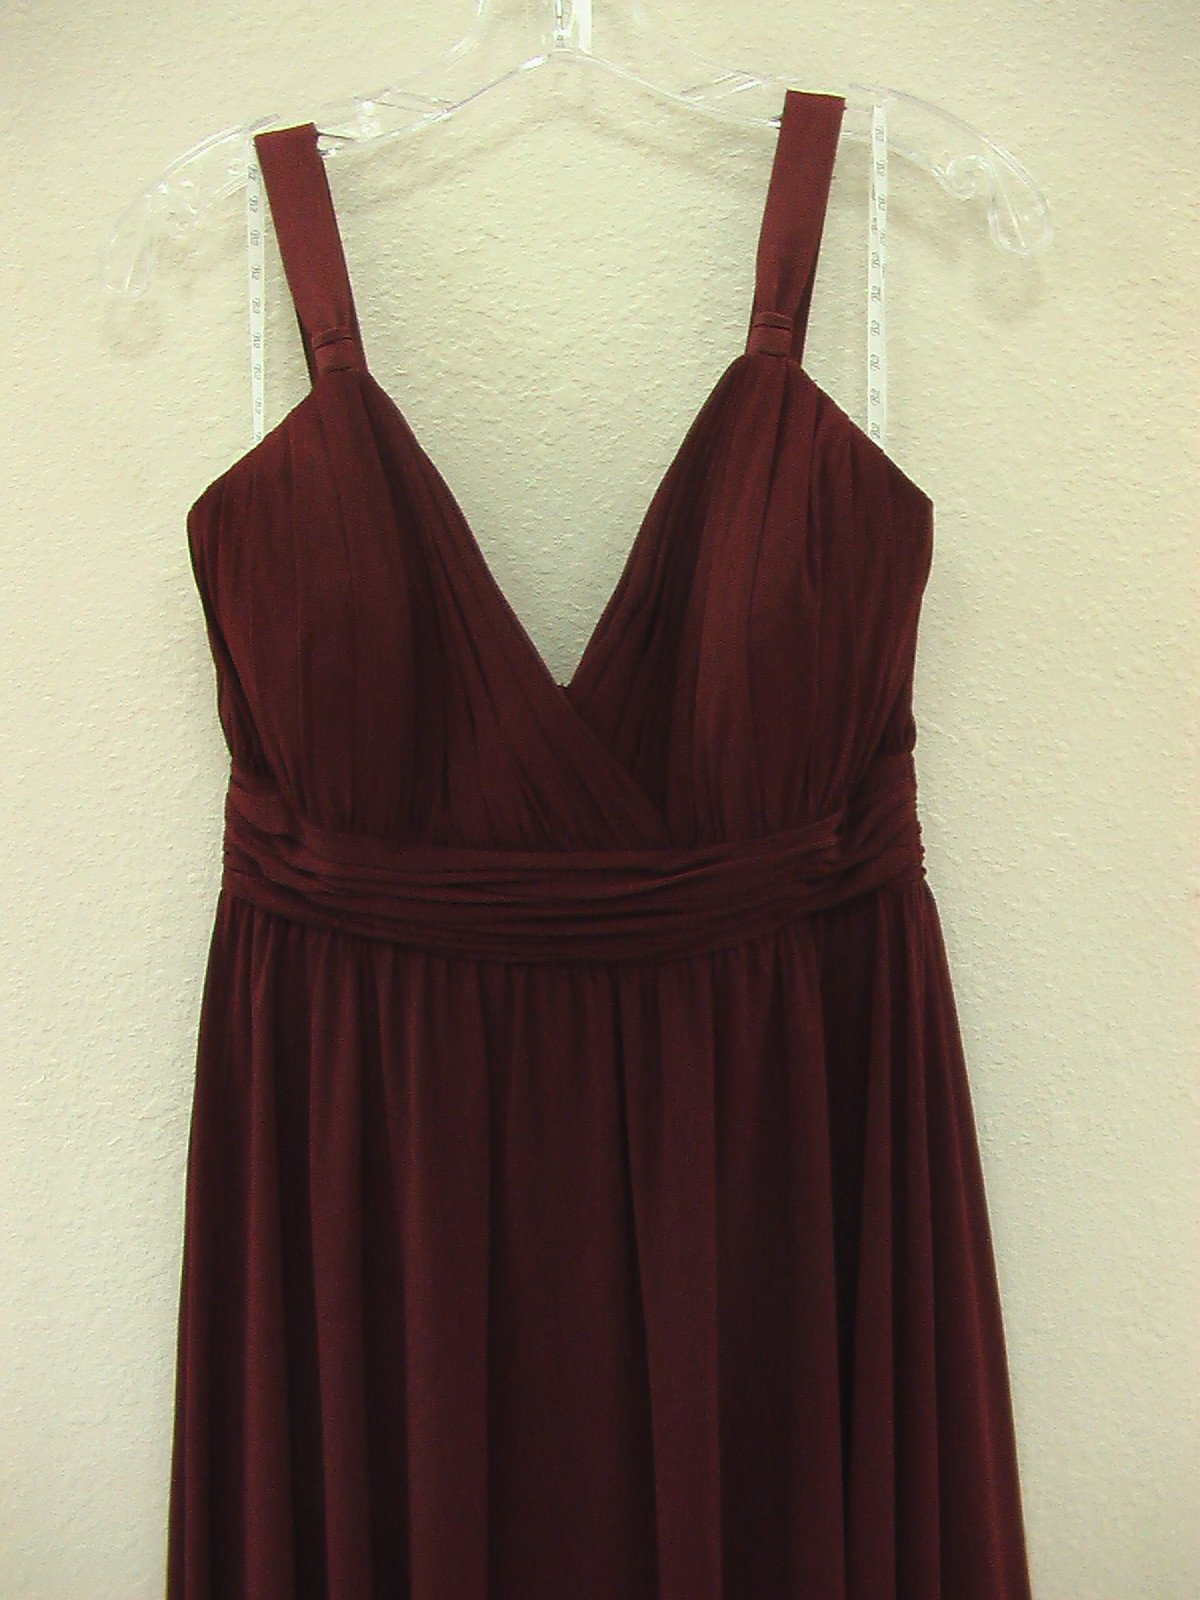 Jasmine B2 B1094 Cranberry size 8 In Stock Bridesmaid Dress - Tom's Bridal